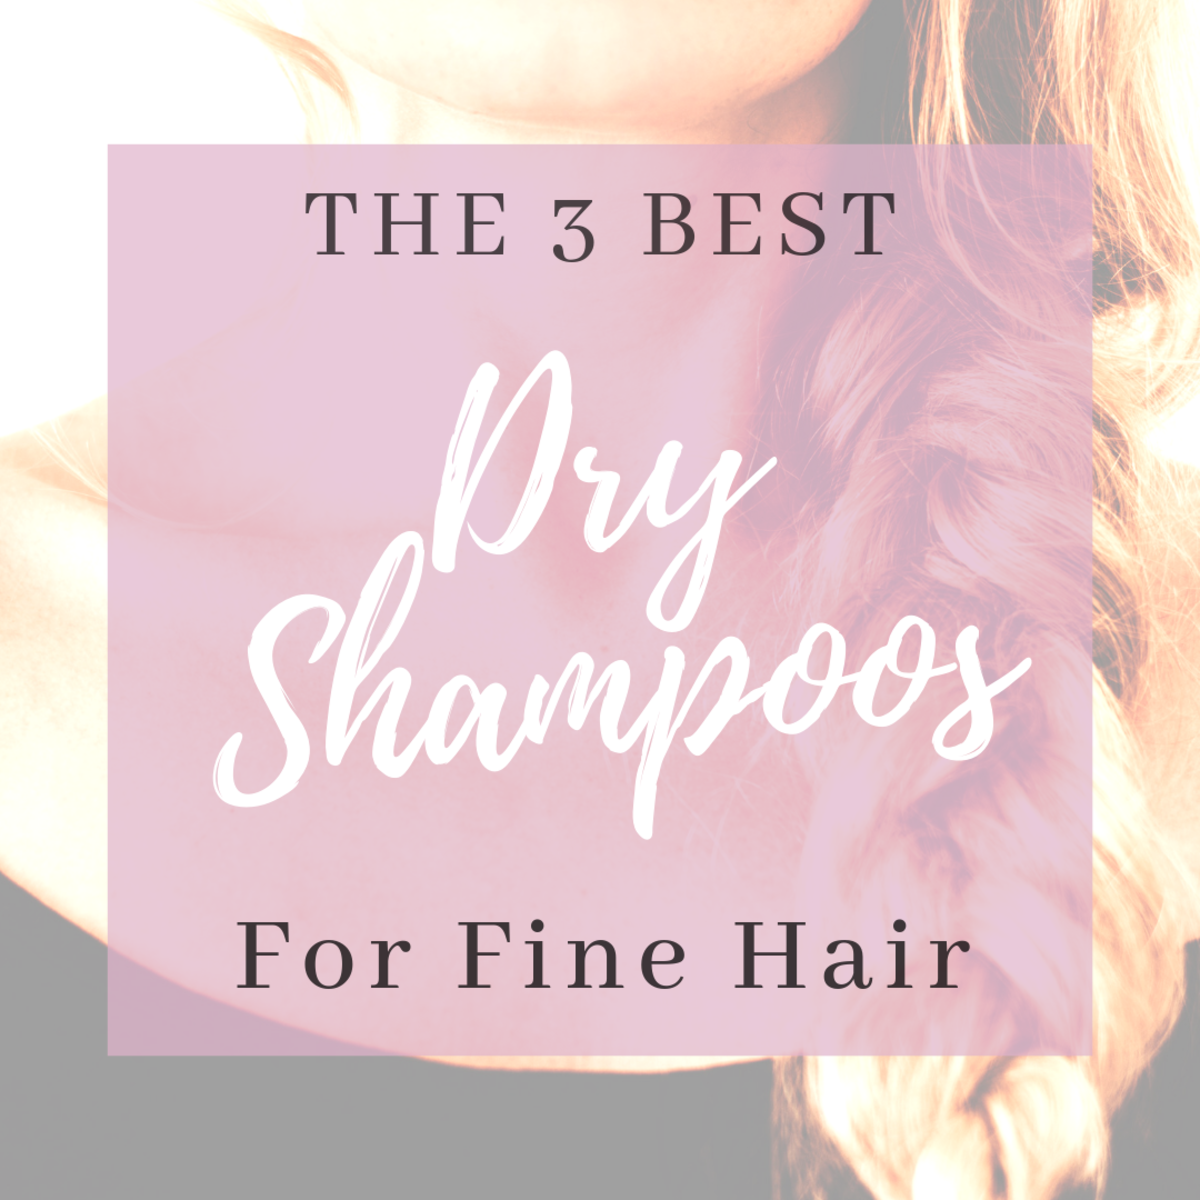 I've tried many brands of dry shampoo over the years and these are my three favorites for thin, fine hair types.